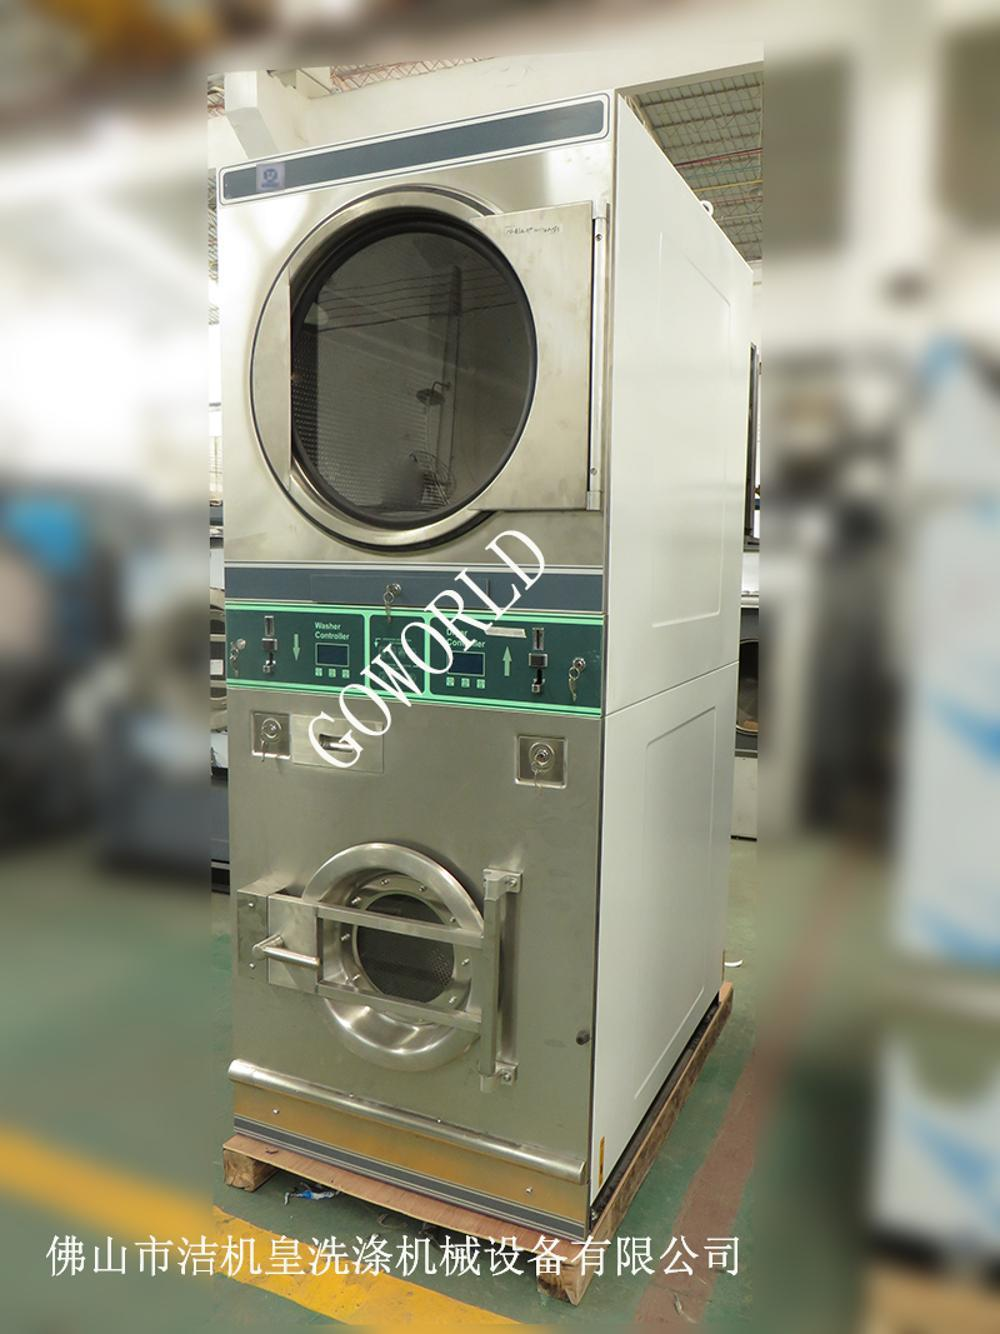 12+12kg stack washer dryer machine for laundromat